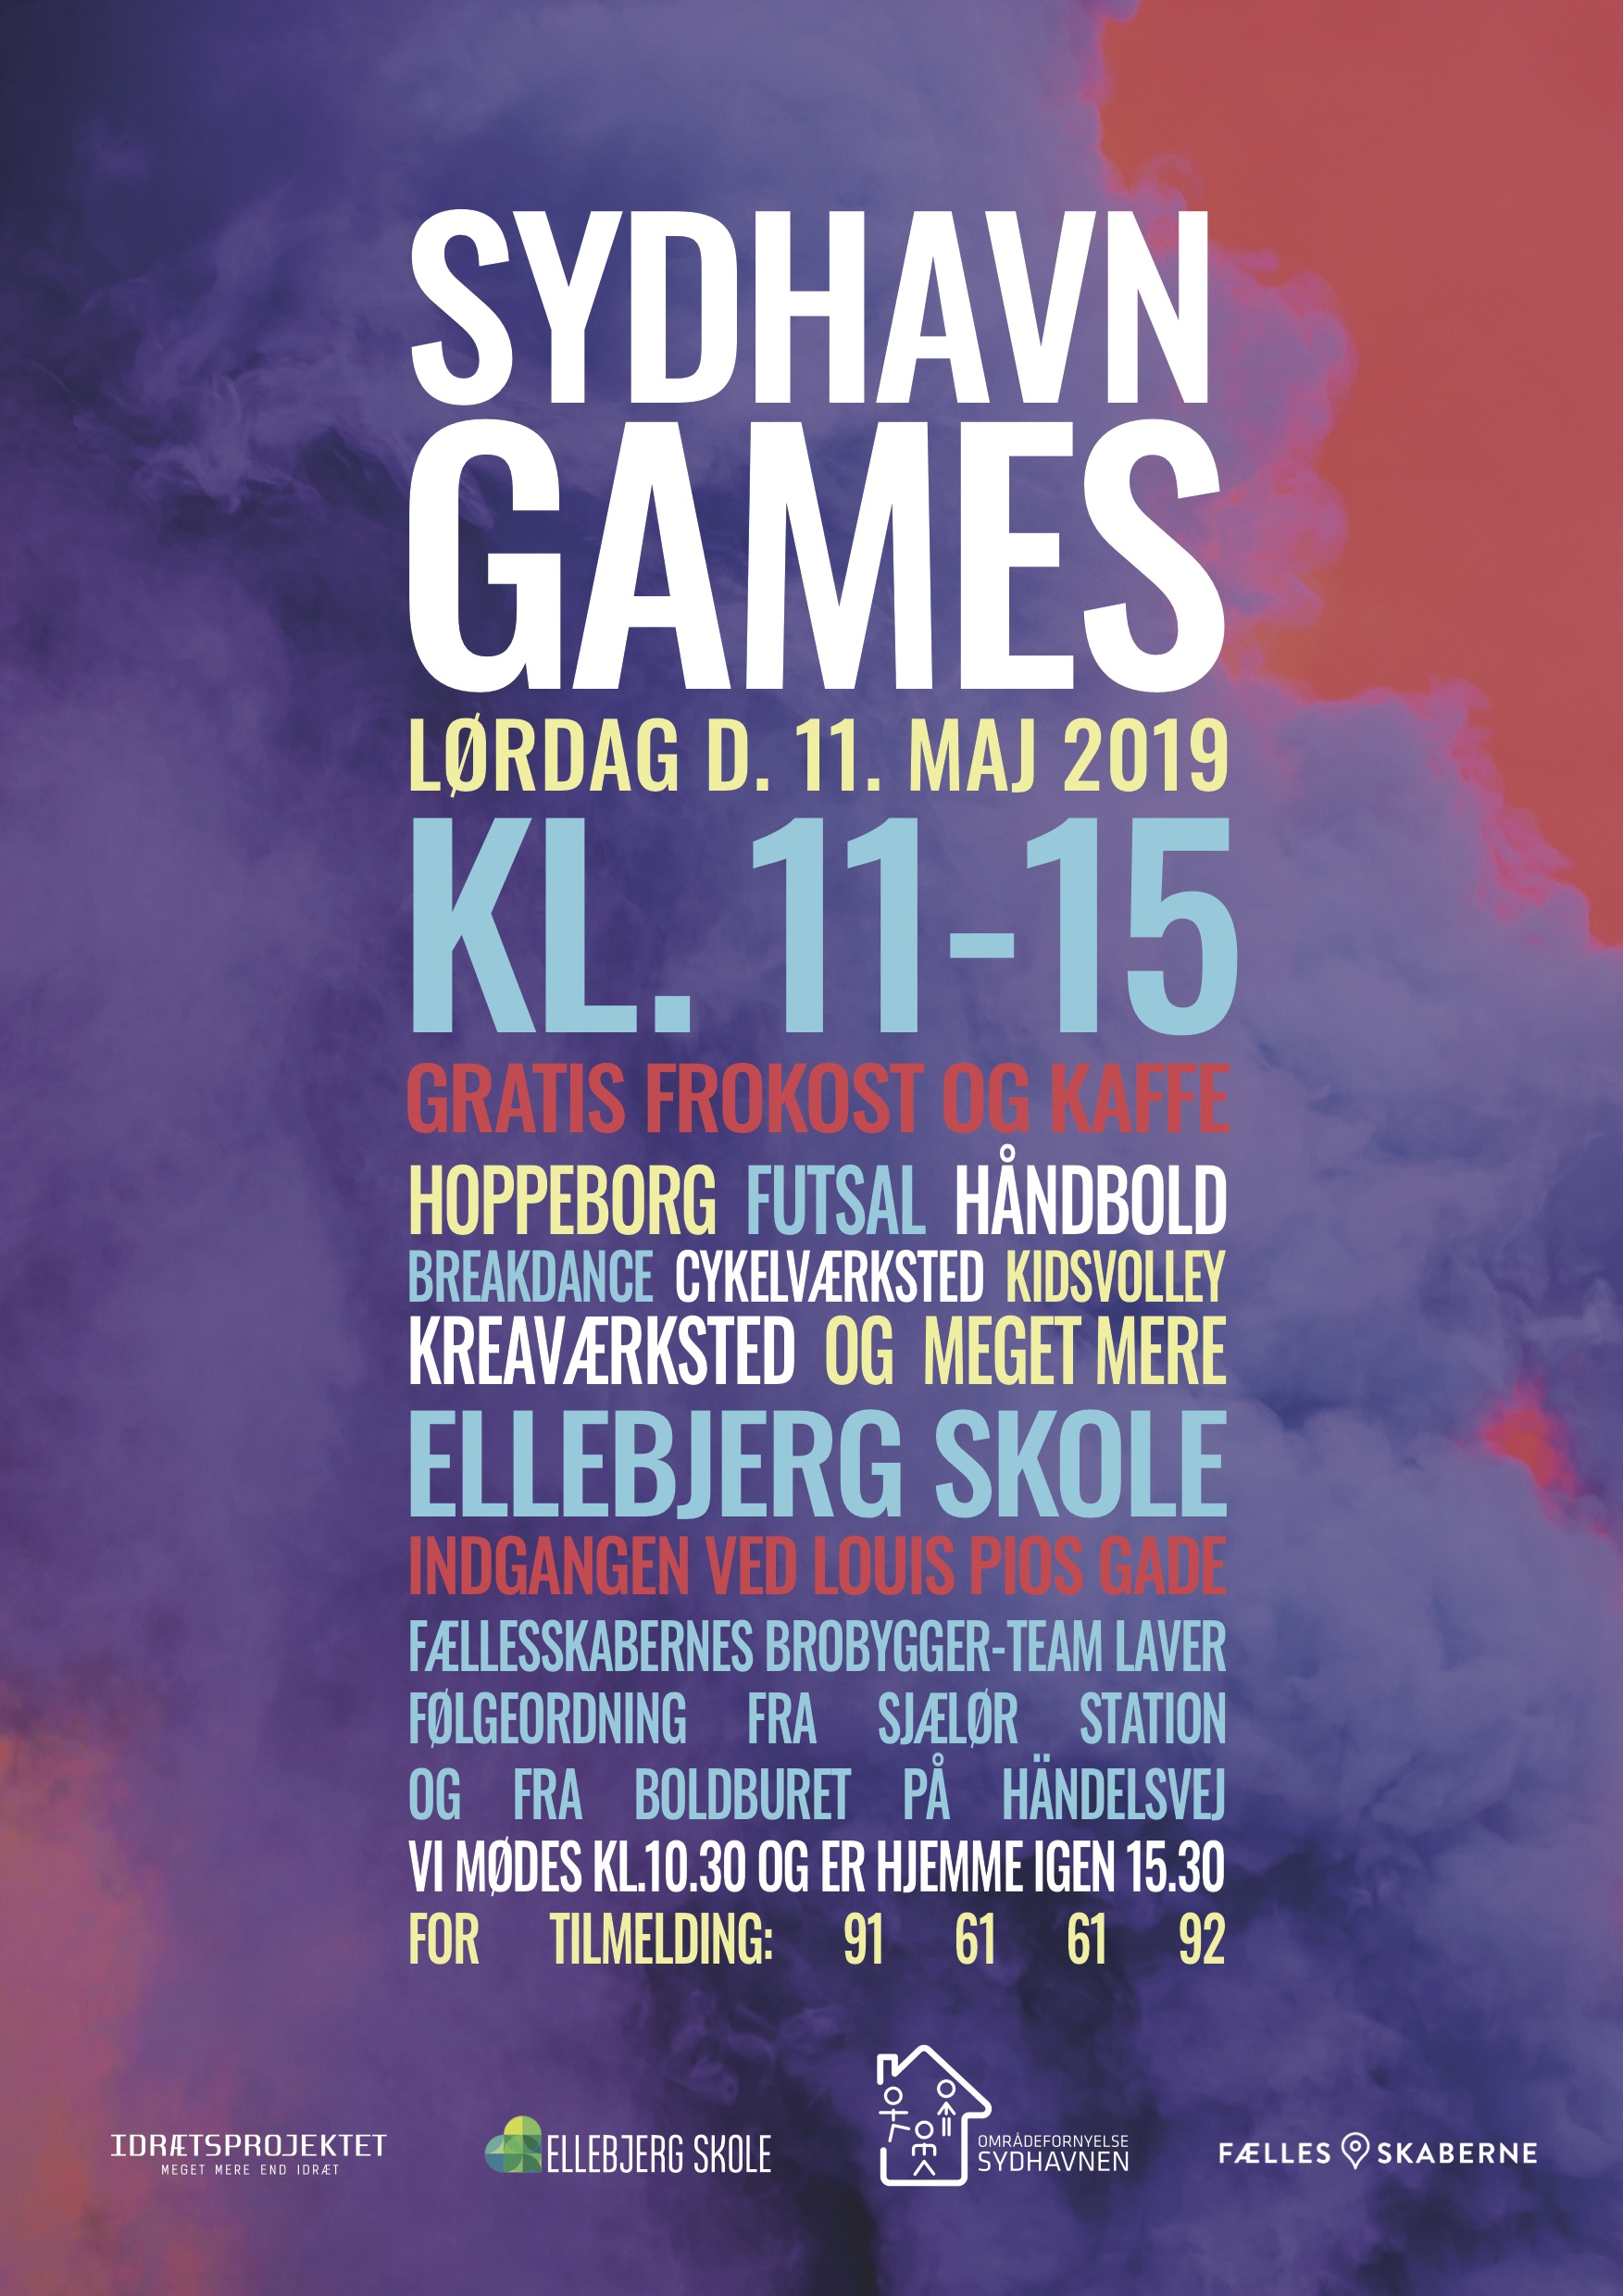 SydhavnGames 2019 A3_final